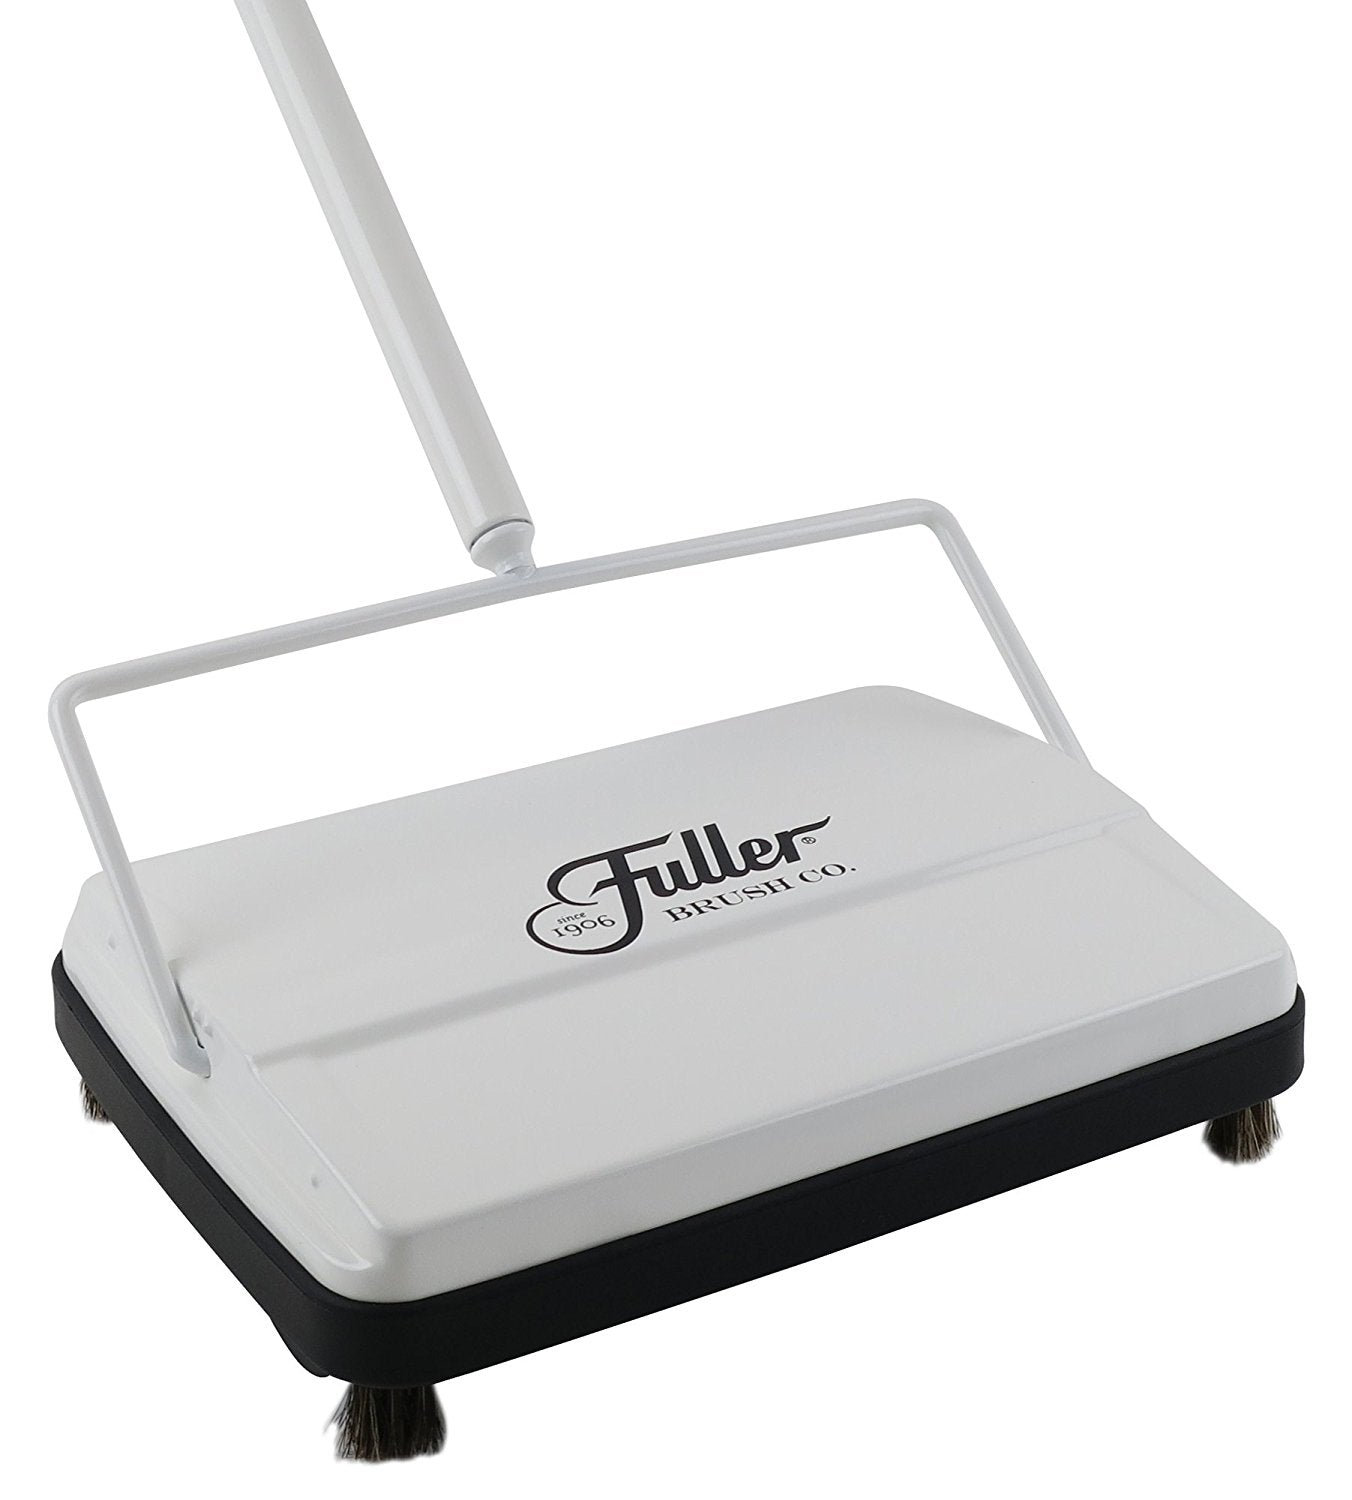 Electrostatic Carpet & Floor Sweeper - Bright White